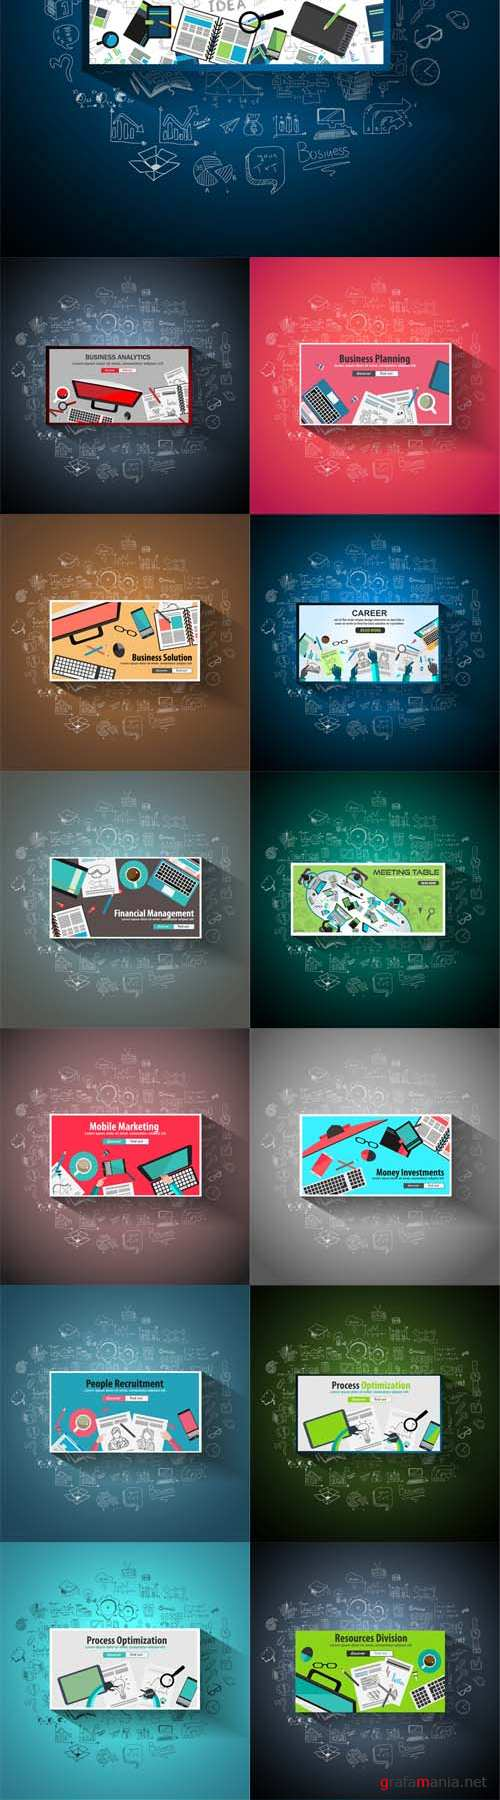 Vector Business Concept with Doodle Design Style